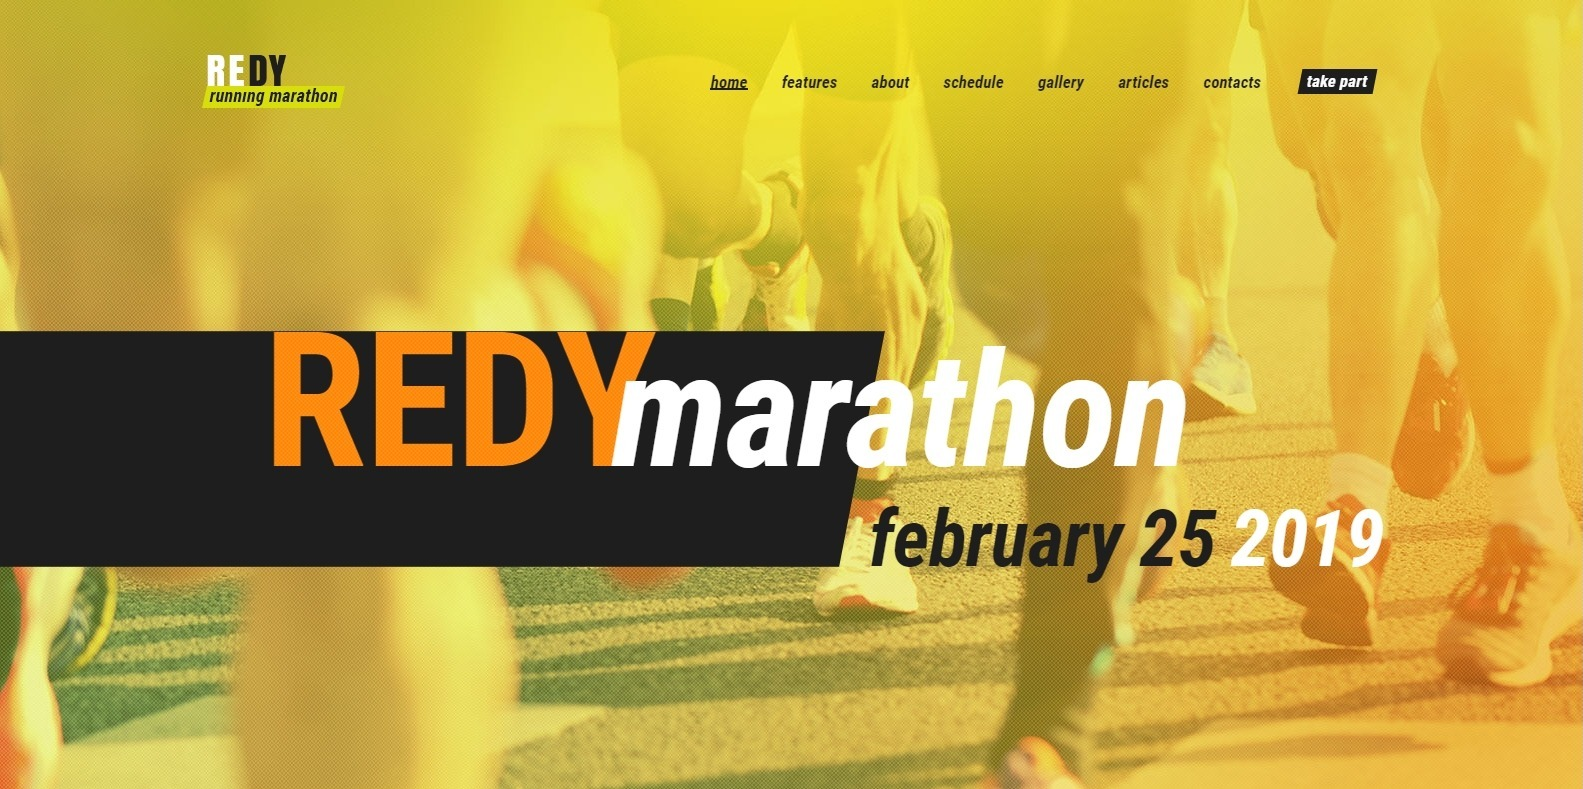 redy-sports-website-template